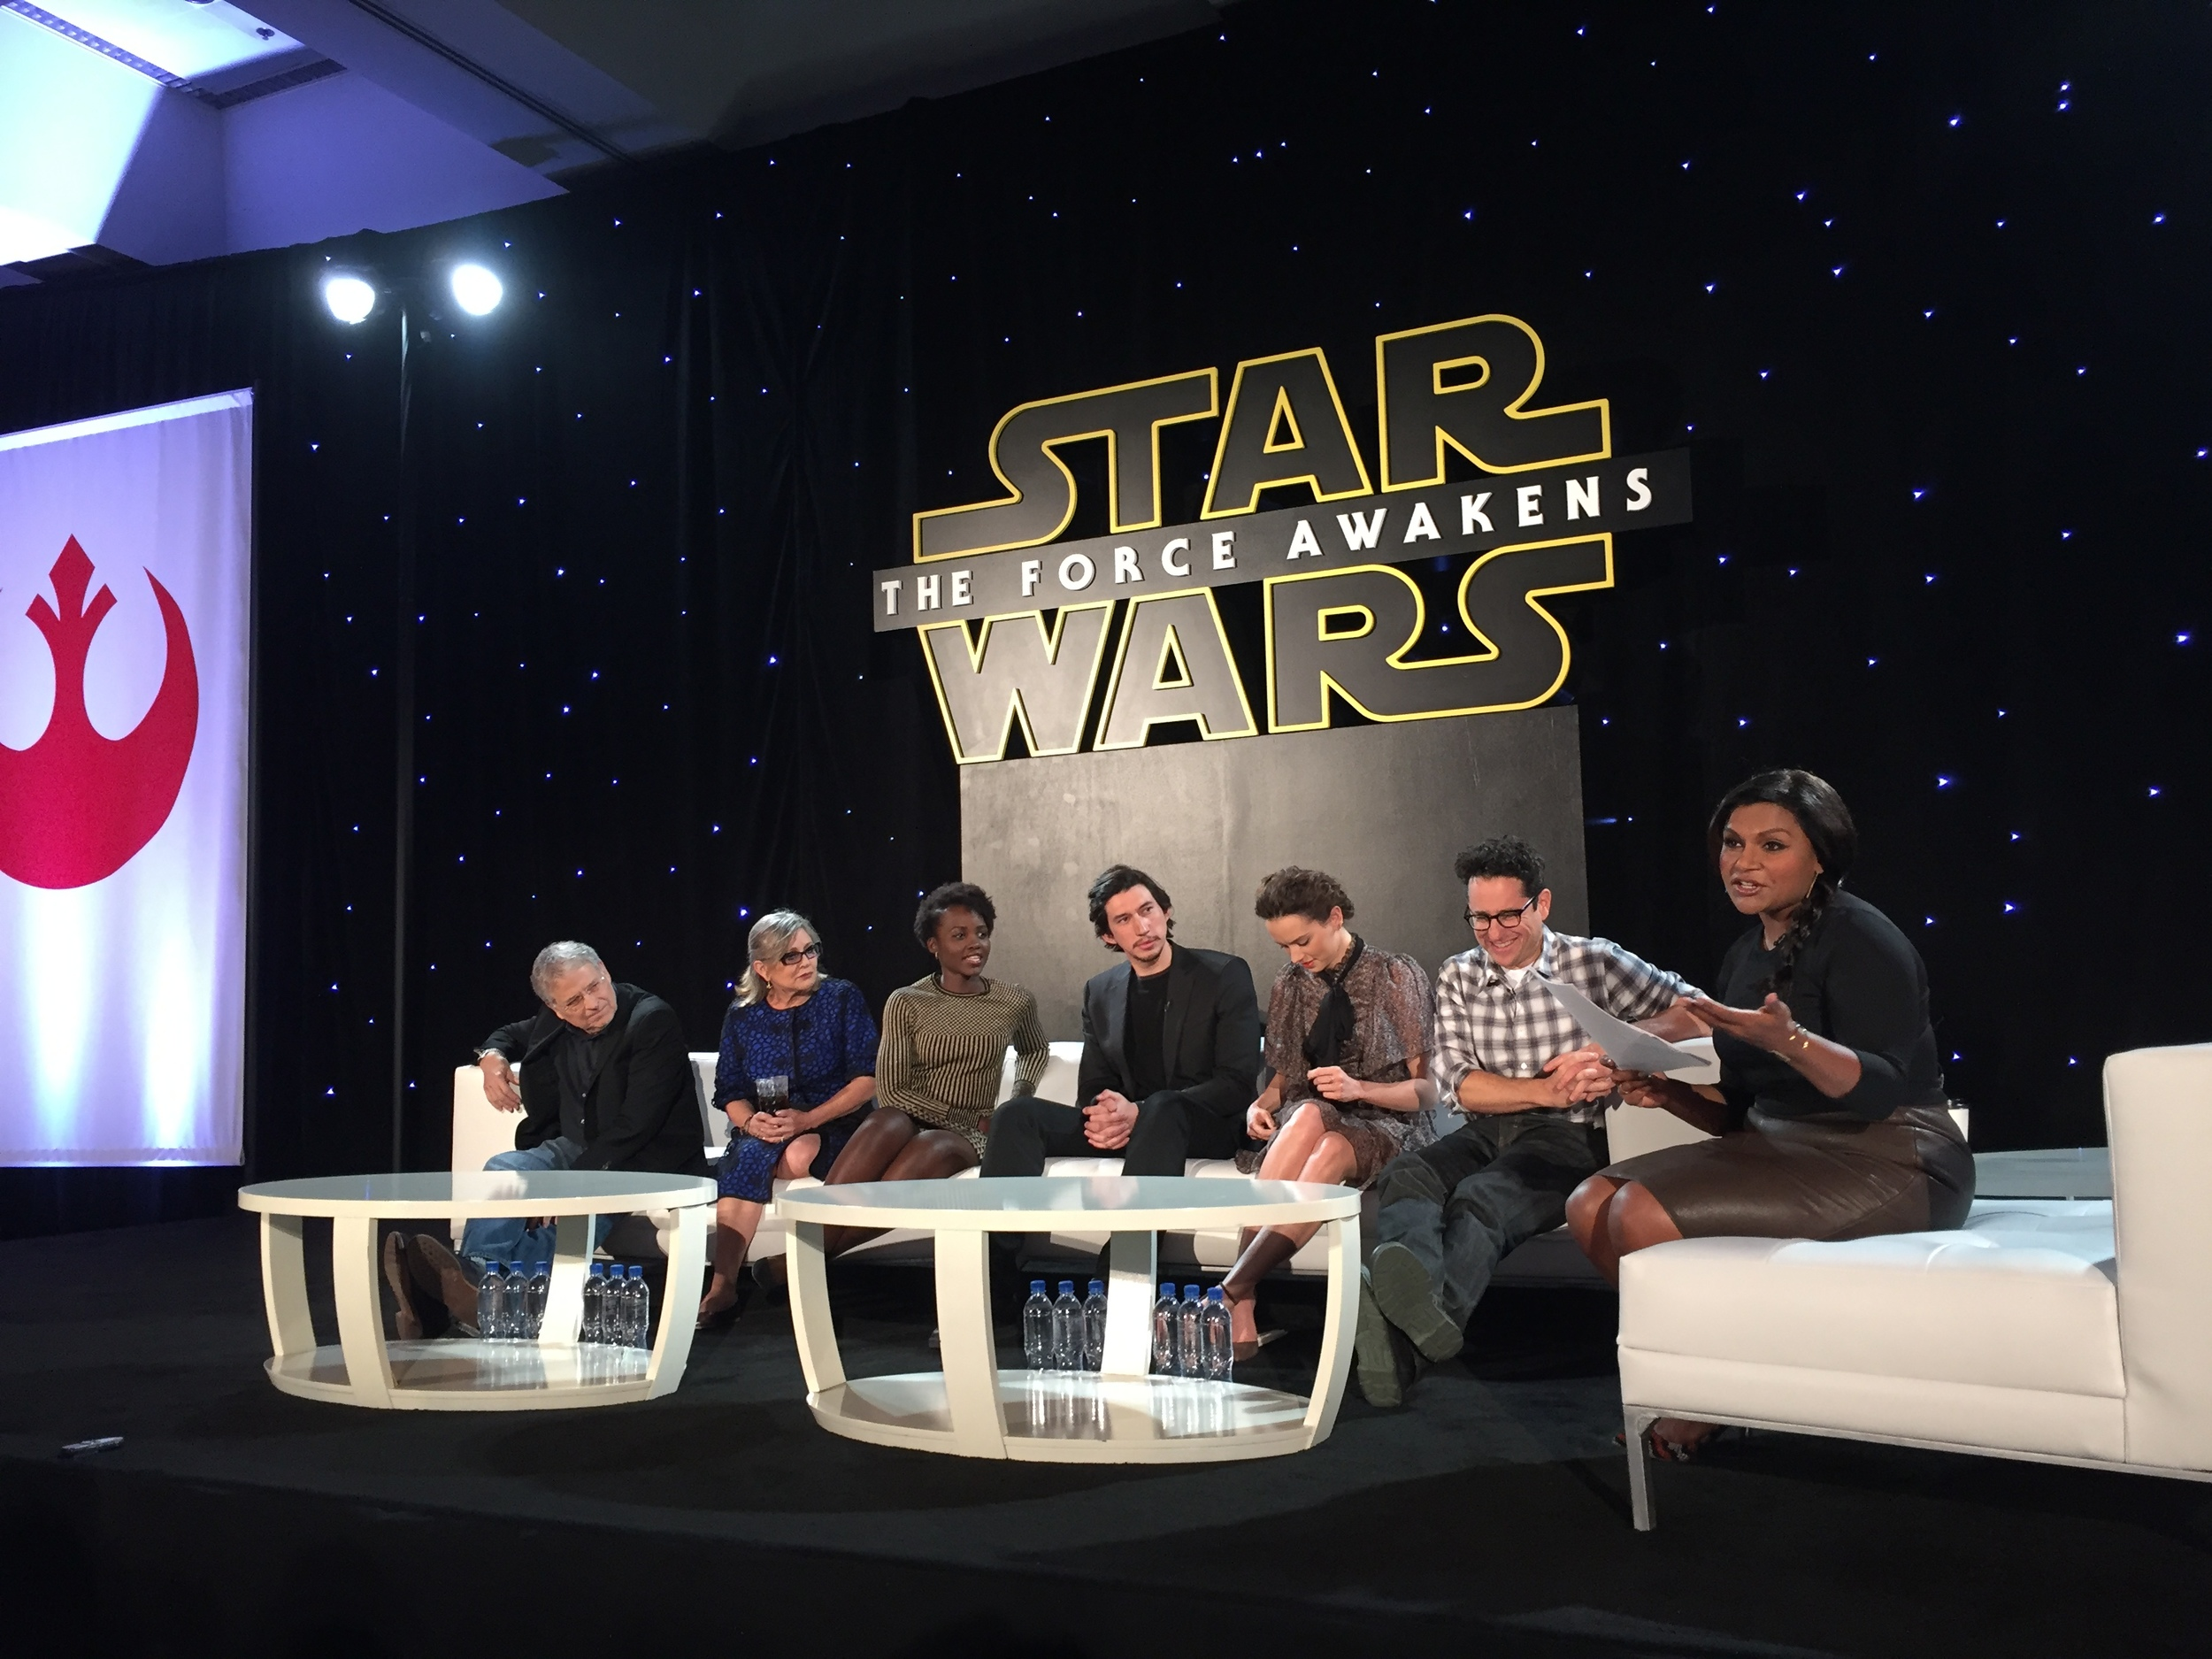 L to R: Lawrence Kasdan, Carrie Fisher, Lupita Nyong'o, Adam Driver, Daisy Ridley, J.J. Abrams